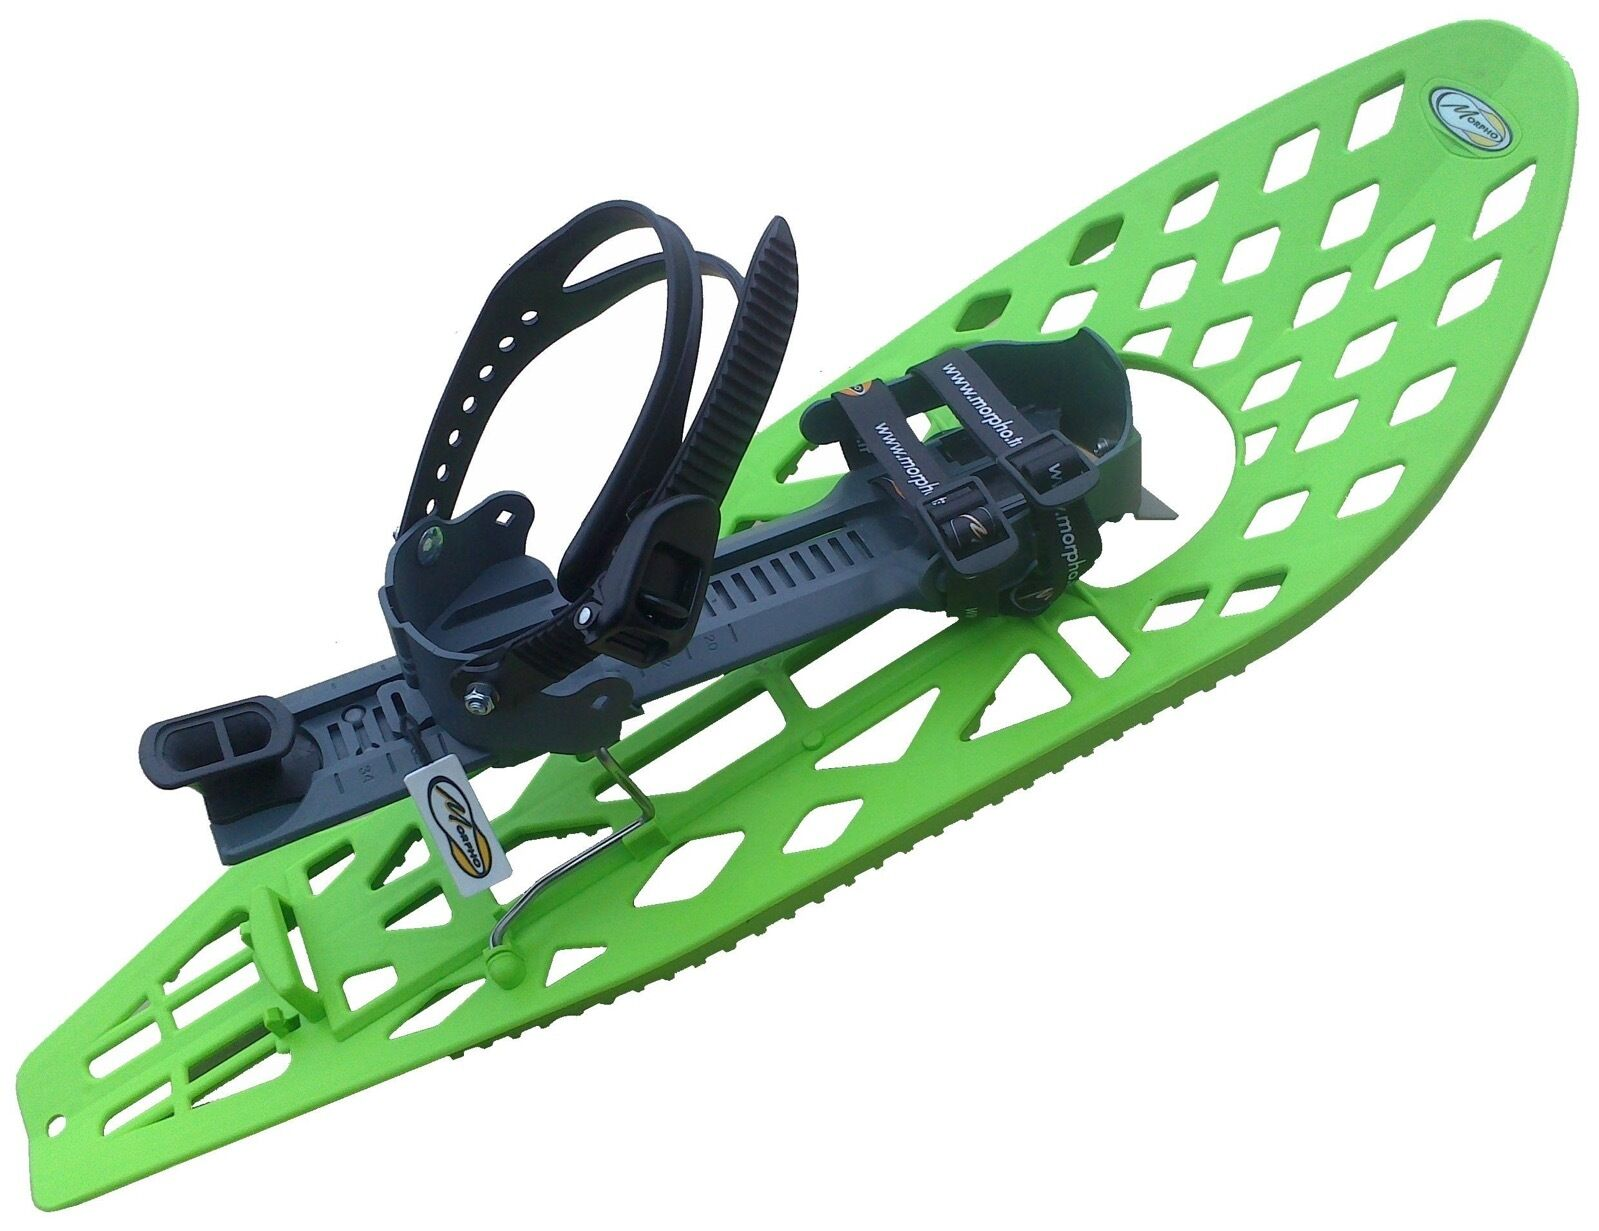 "MORPHO TRIMALP Composite Light Snowshoes Snow shoes 30""x10"" Large Made in France"